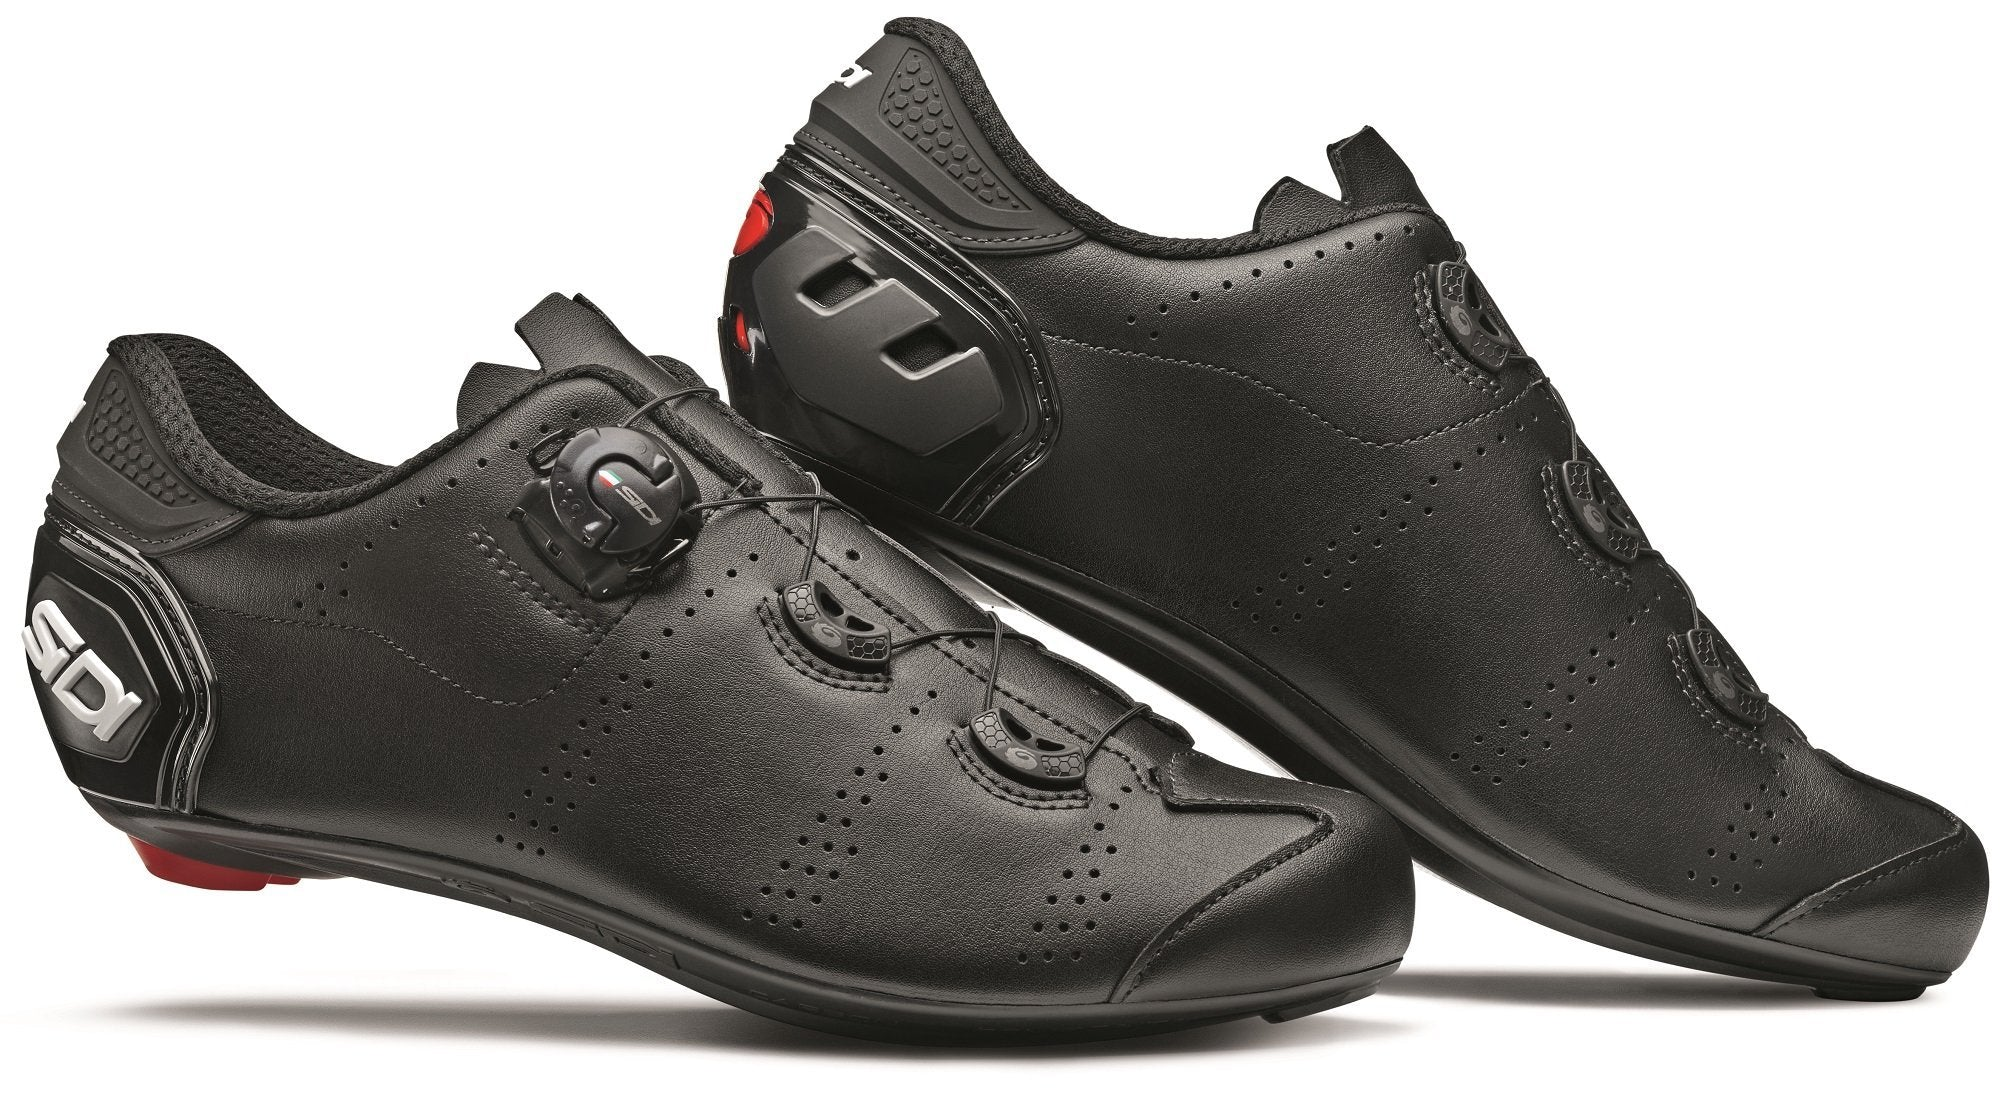 Sidi-Sidi Fast Road Cycling Shoes - Action Athlete Supply